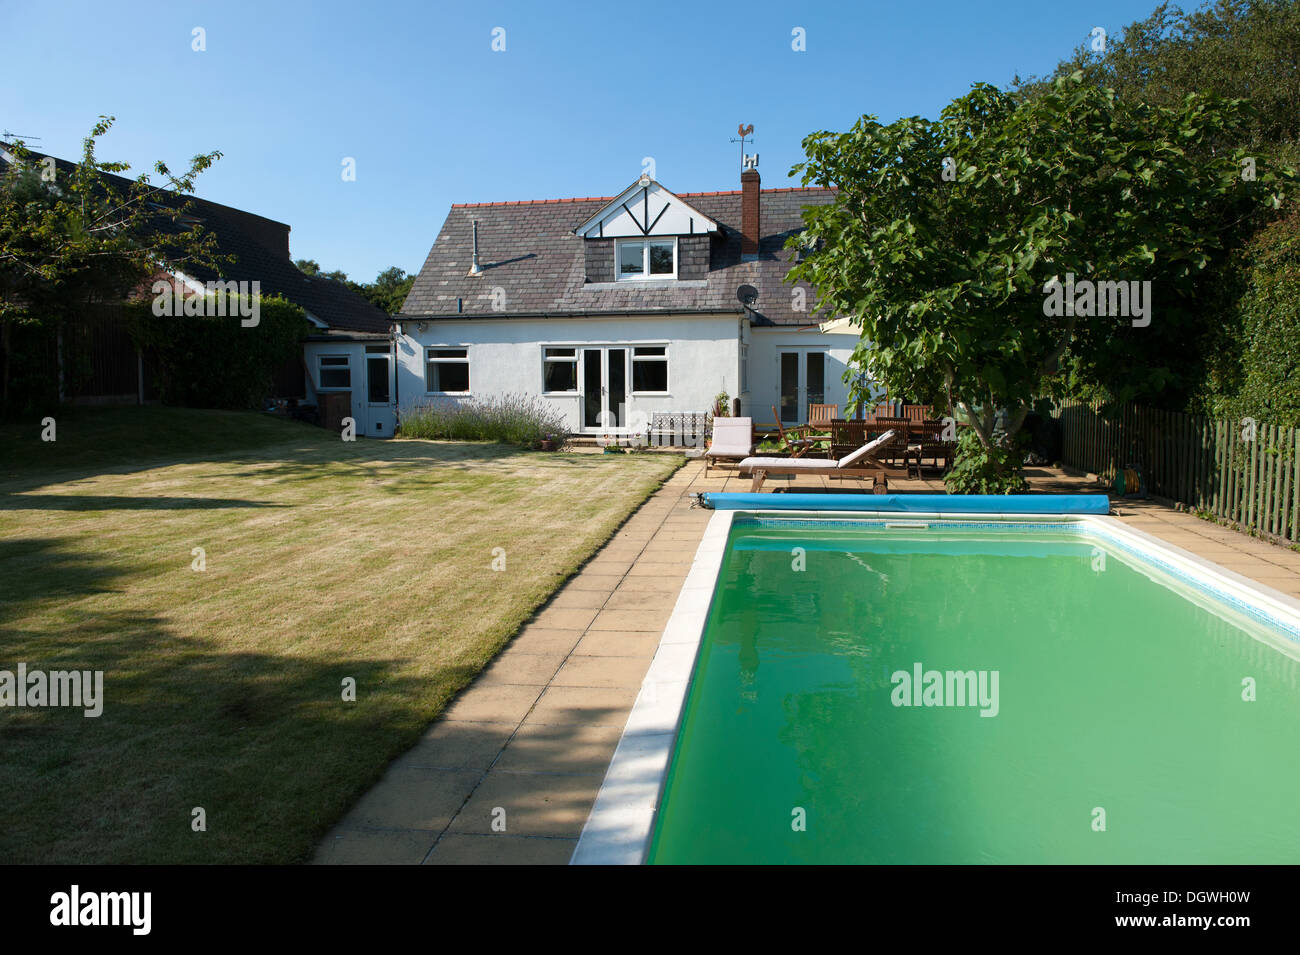 House Garden Large Swimming Pool Green Algae Cloudy Water Stock Photo Royalty Free Image